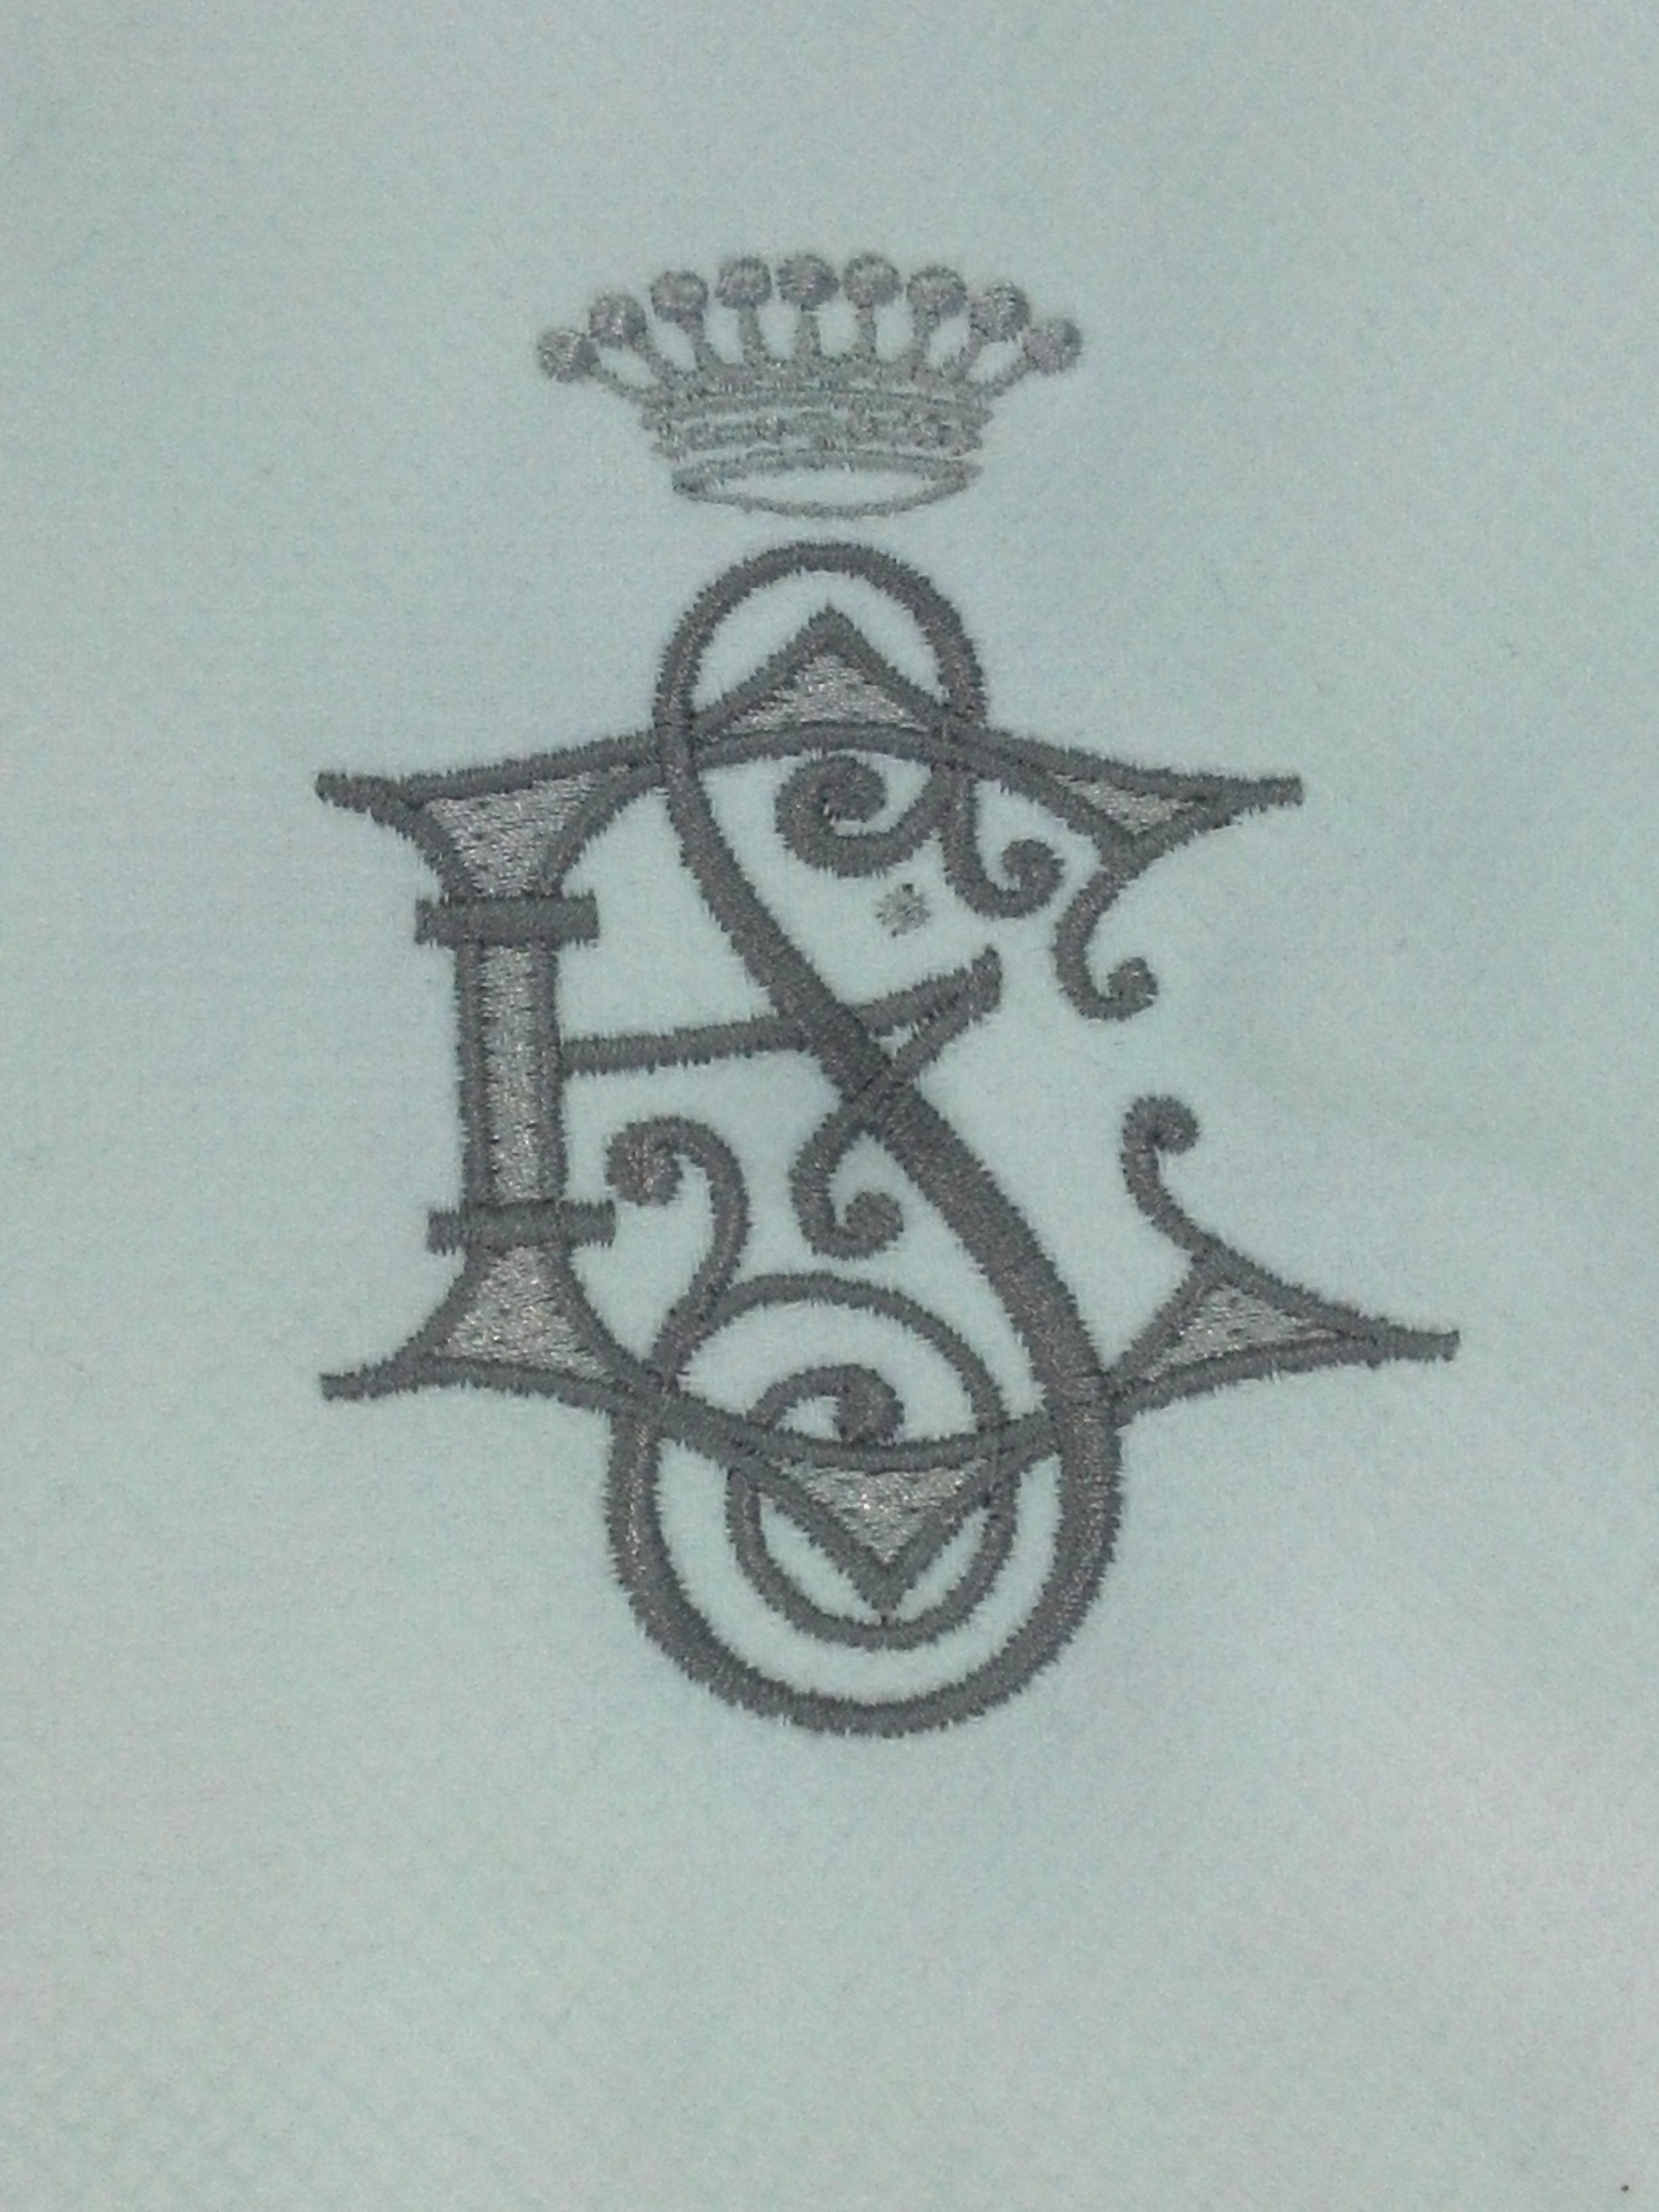 $20 French pique guest towel with regal 2 letter monogram and crown